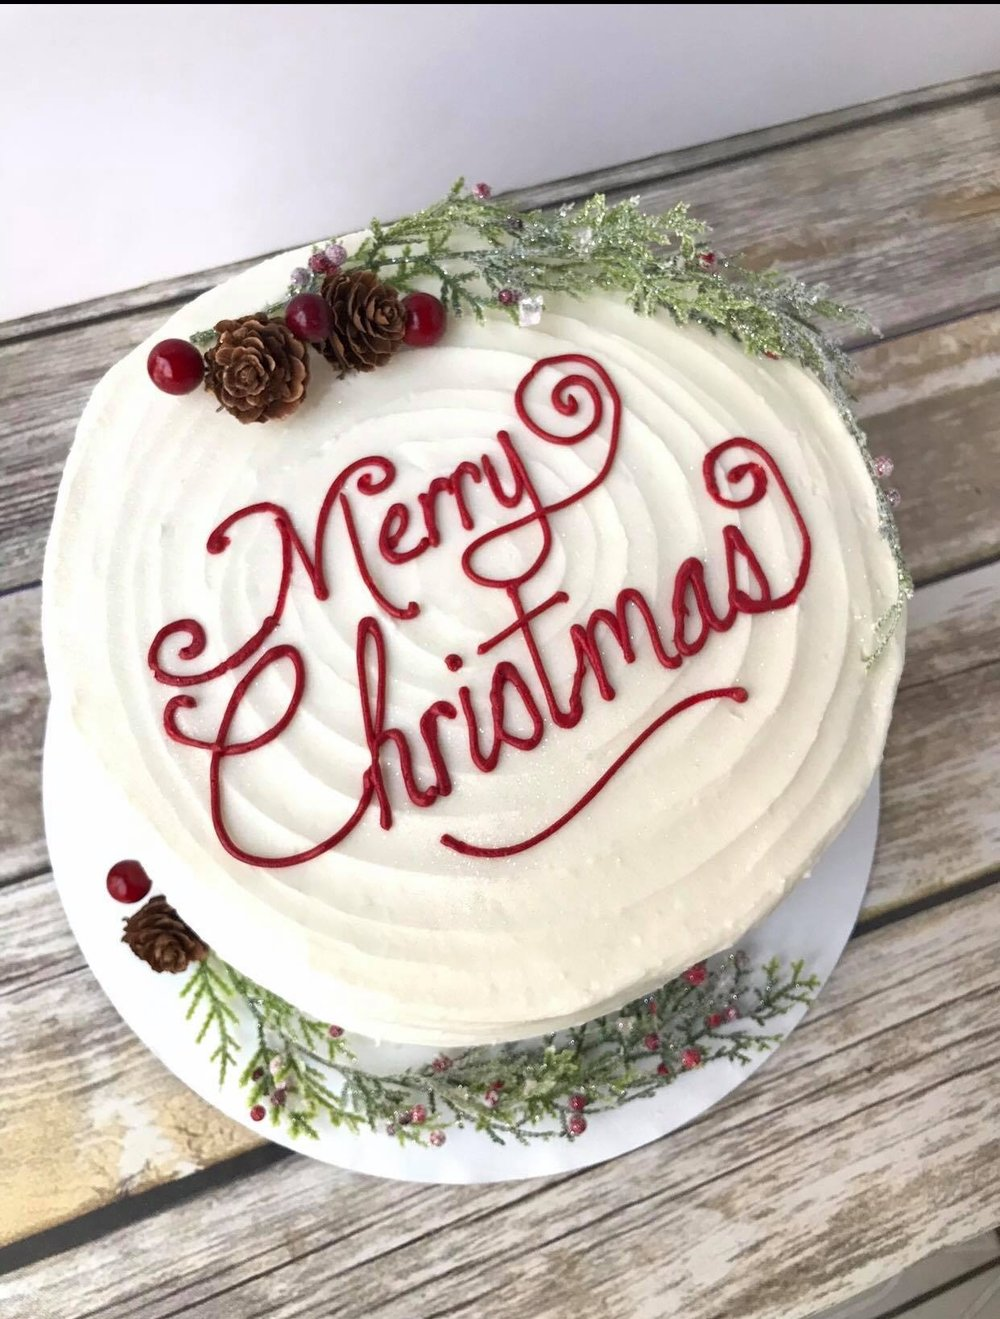 Merry Christmas Cake - $45 6 inch$55 8 inch$65 9 inch